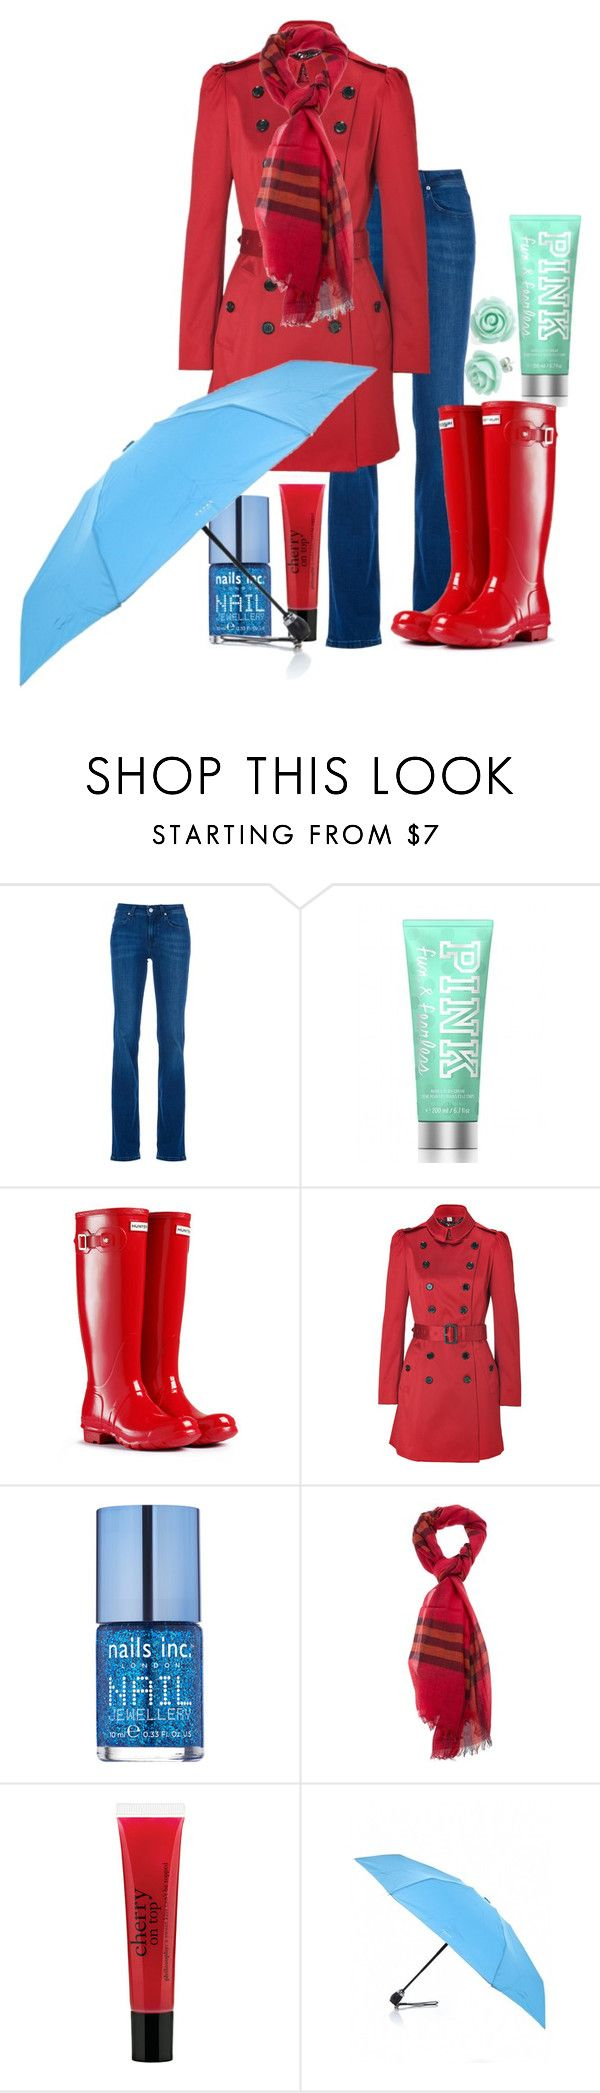 """rain / contest"" by jorgelina2012 ❤ liked on Polyvore featuring Burberry, Victoria's Secret, Hunter, Nails Inc., philosophy and Davek"